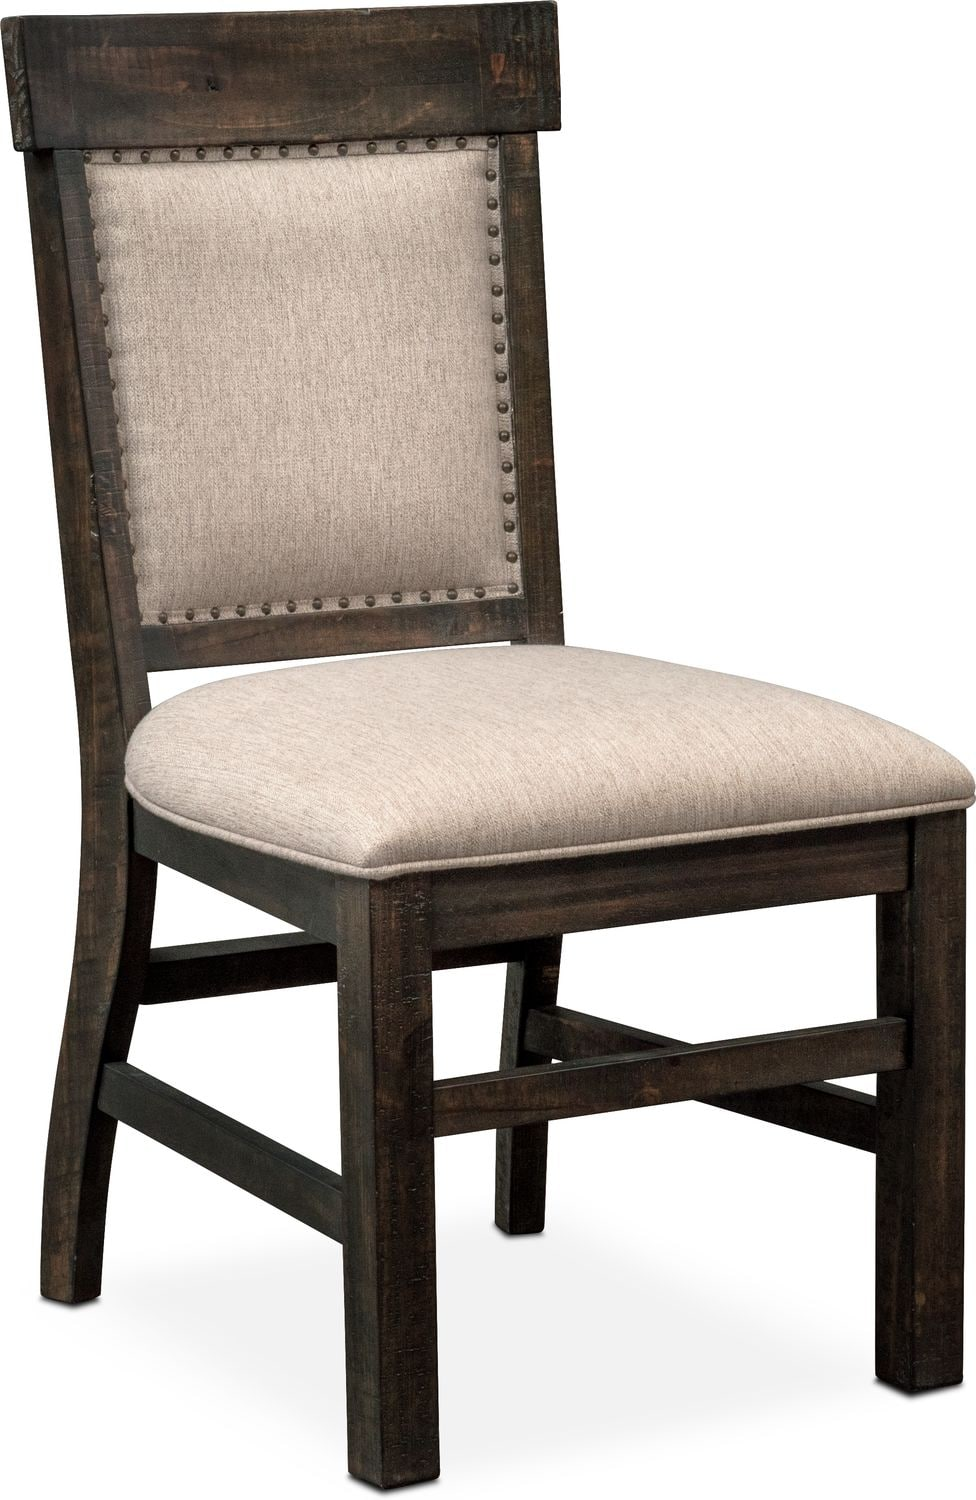 Dining Room Furniture - Charthouse Upholstered Dining Chair